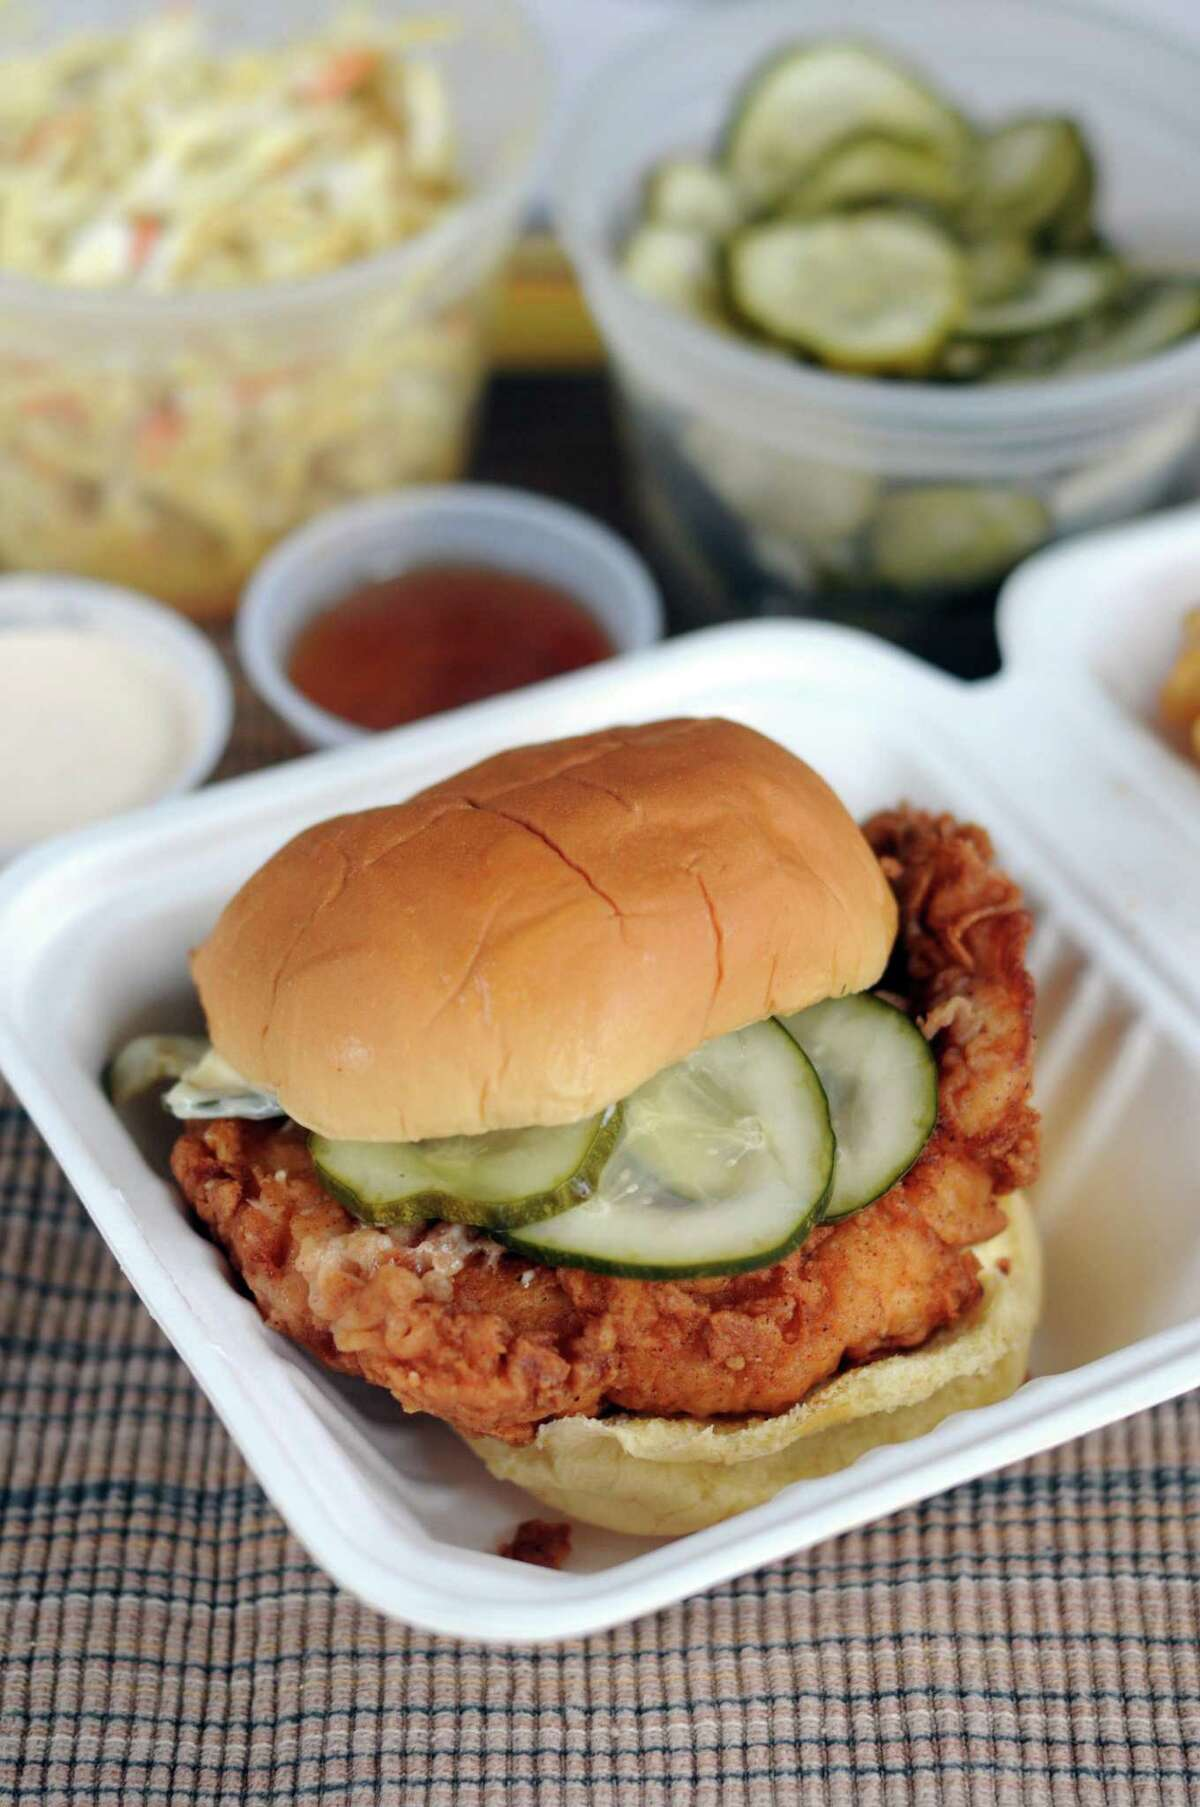 The regular fried chicken sandwich from Motel Fried Chicken is far less painful than its spicy sibling.